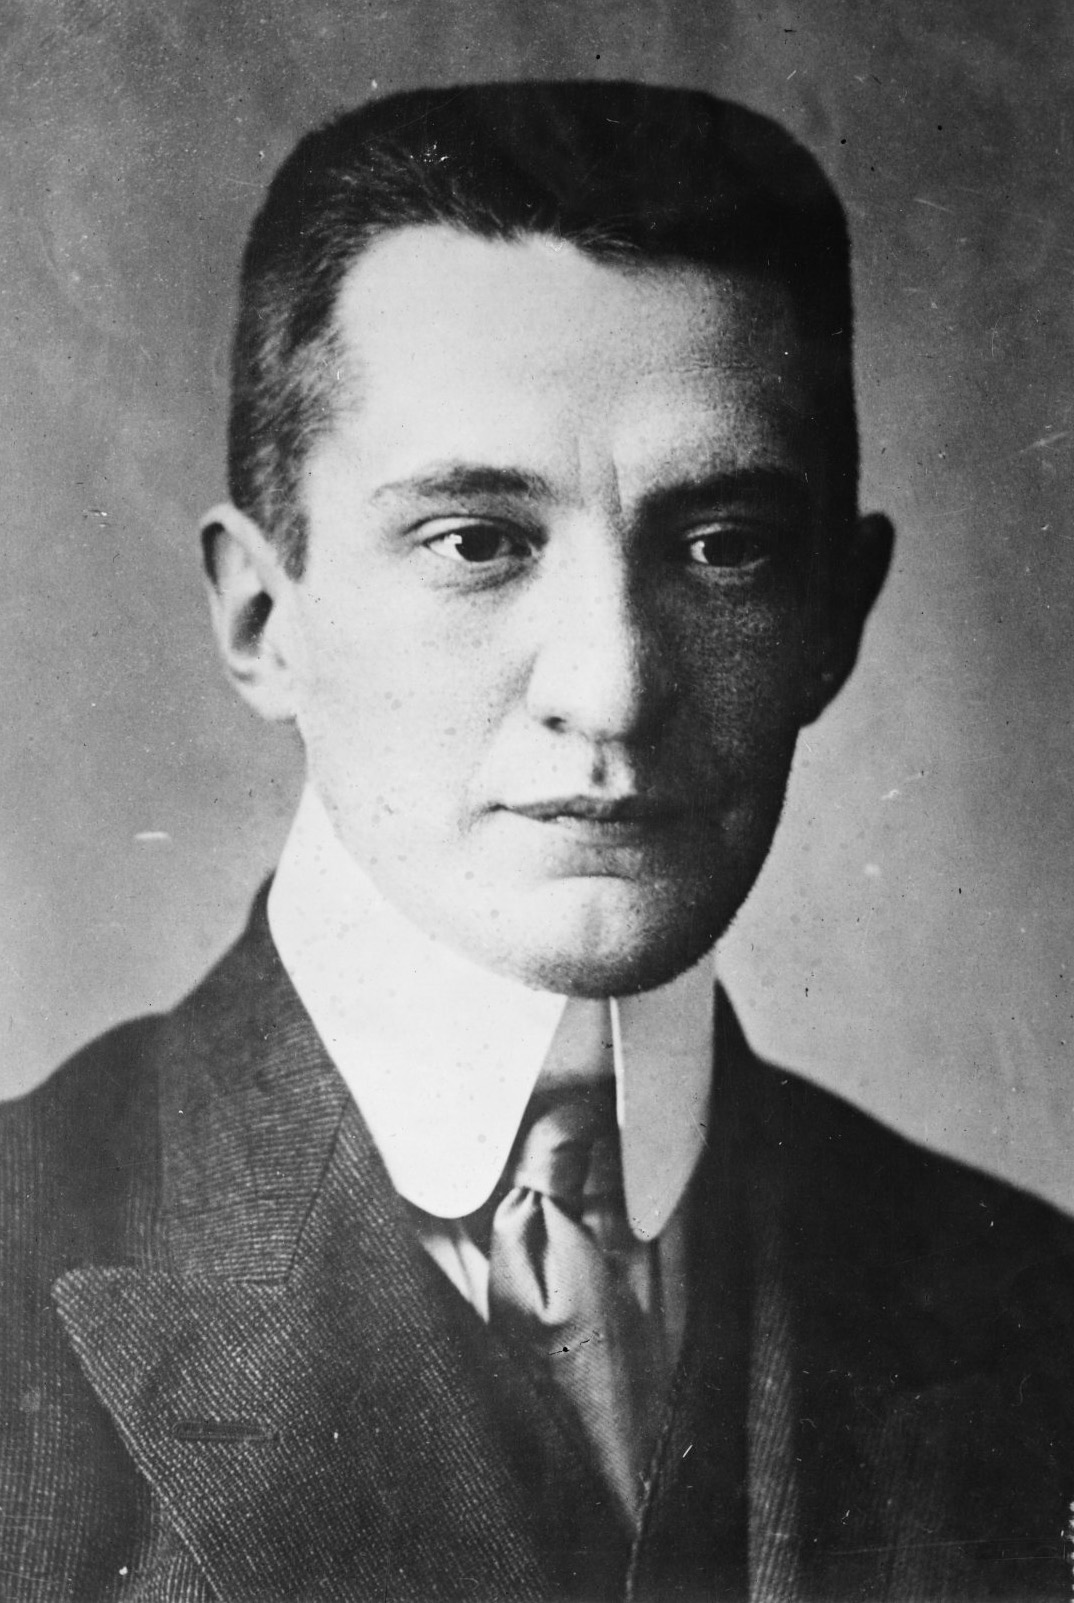 Alexander Fyodorovich Kerensky (Алекса́ндр Фёдорович Ке́ренский), who served as the second Prime Minister of the Russian Provisional Government until the Bolshevik Revolution